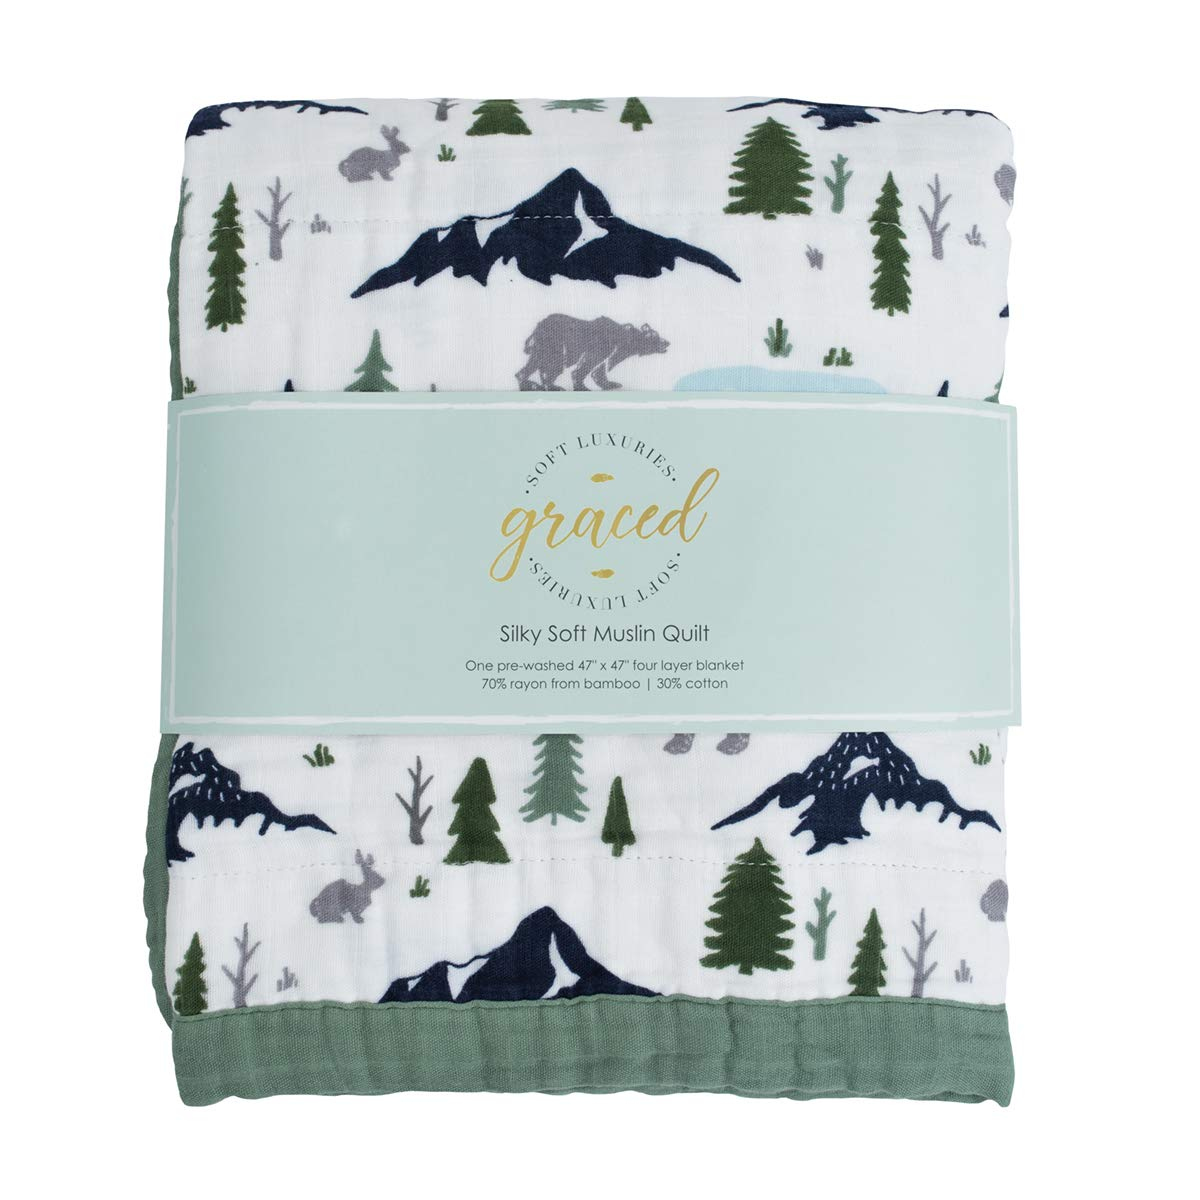 GRACED SOFT LUXURIES Softest Large 4-Layer Bamboo Muslin Quilt, 47